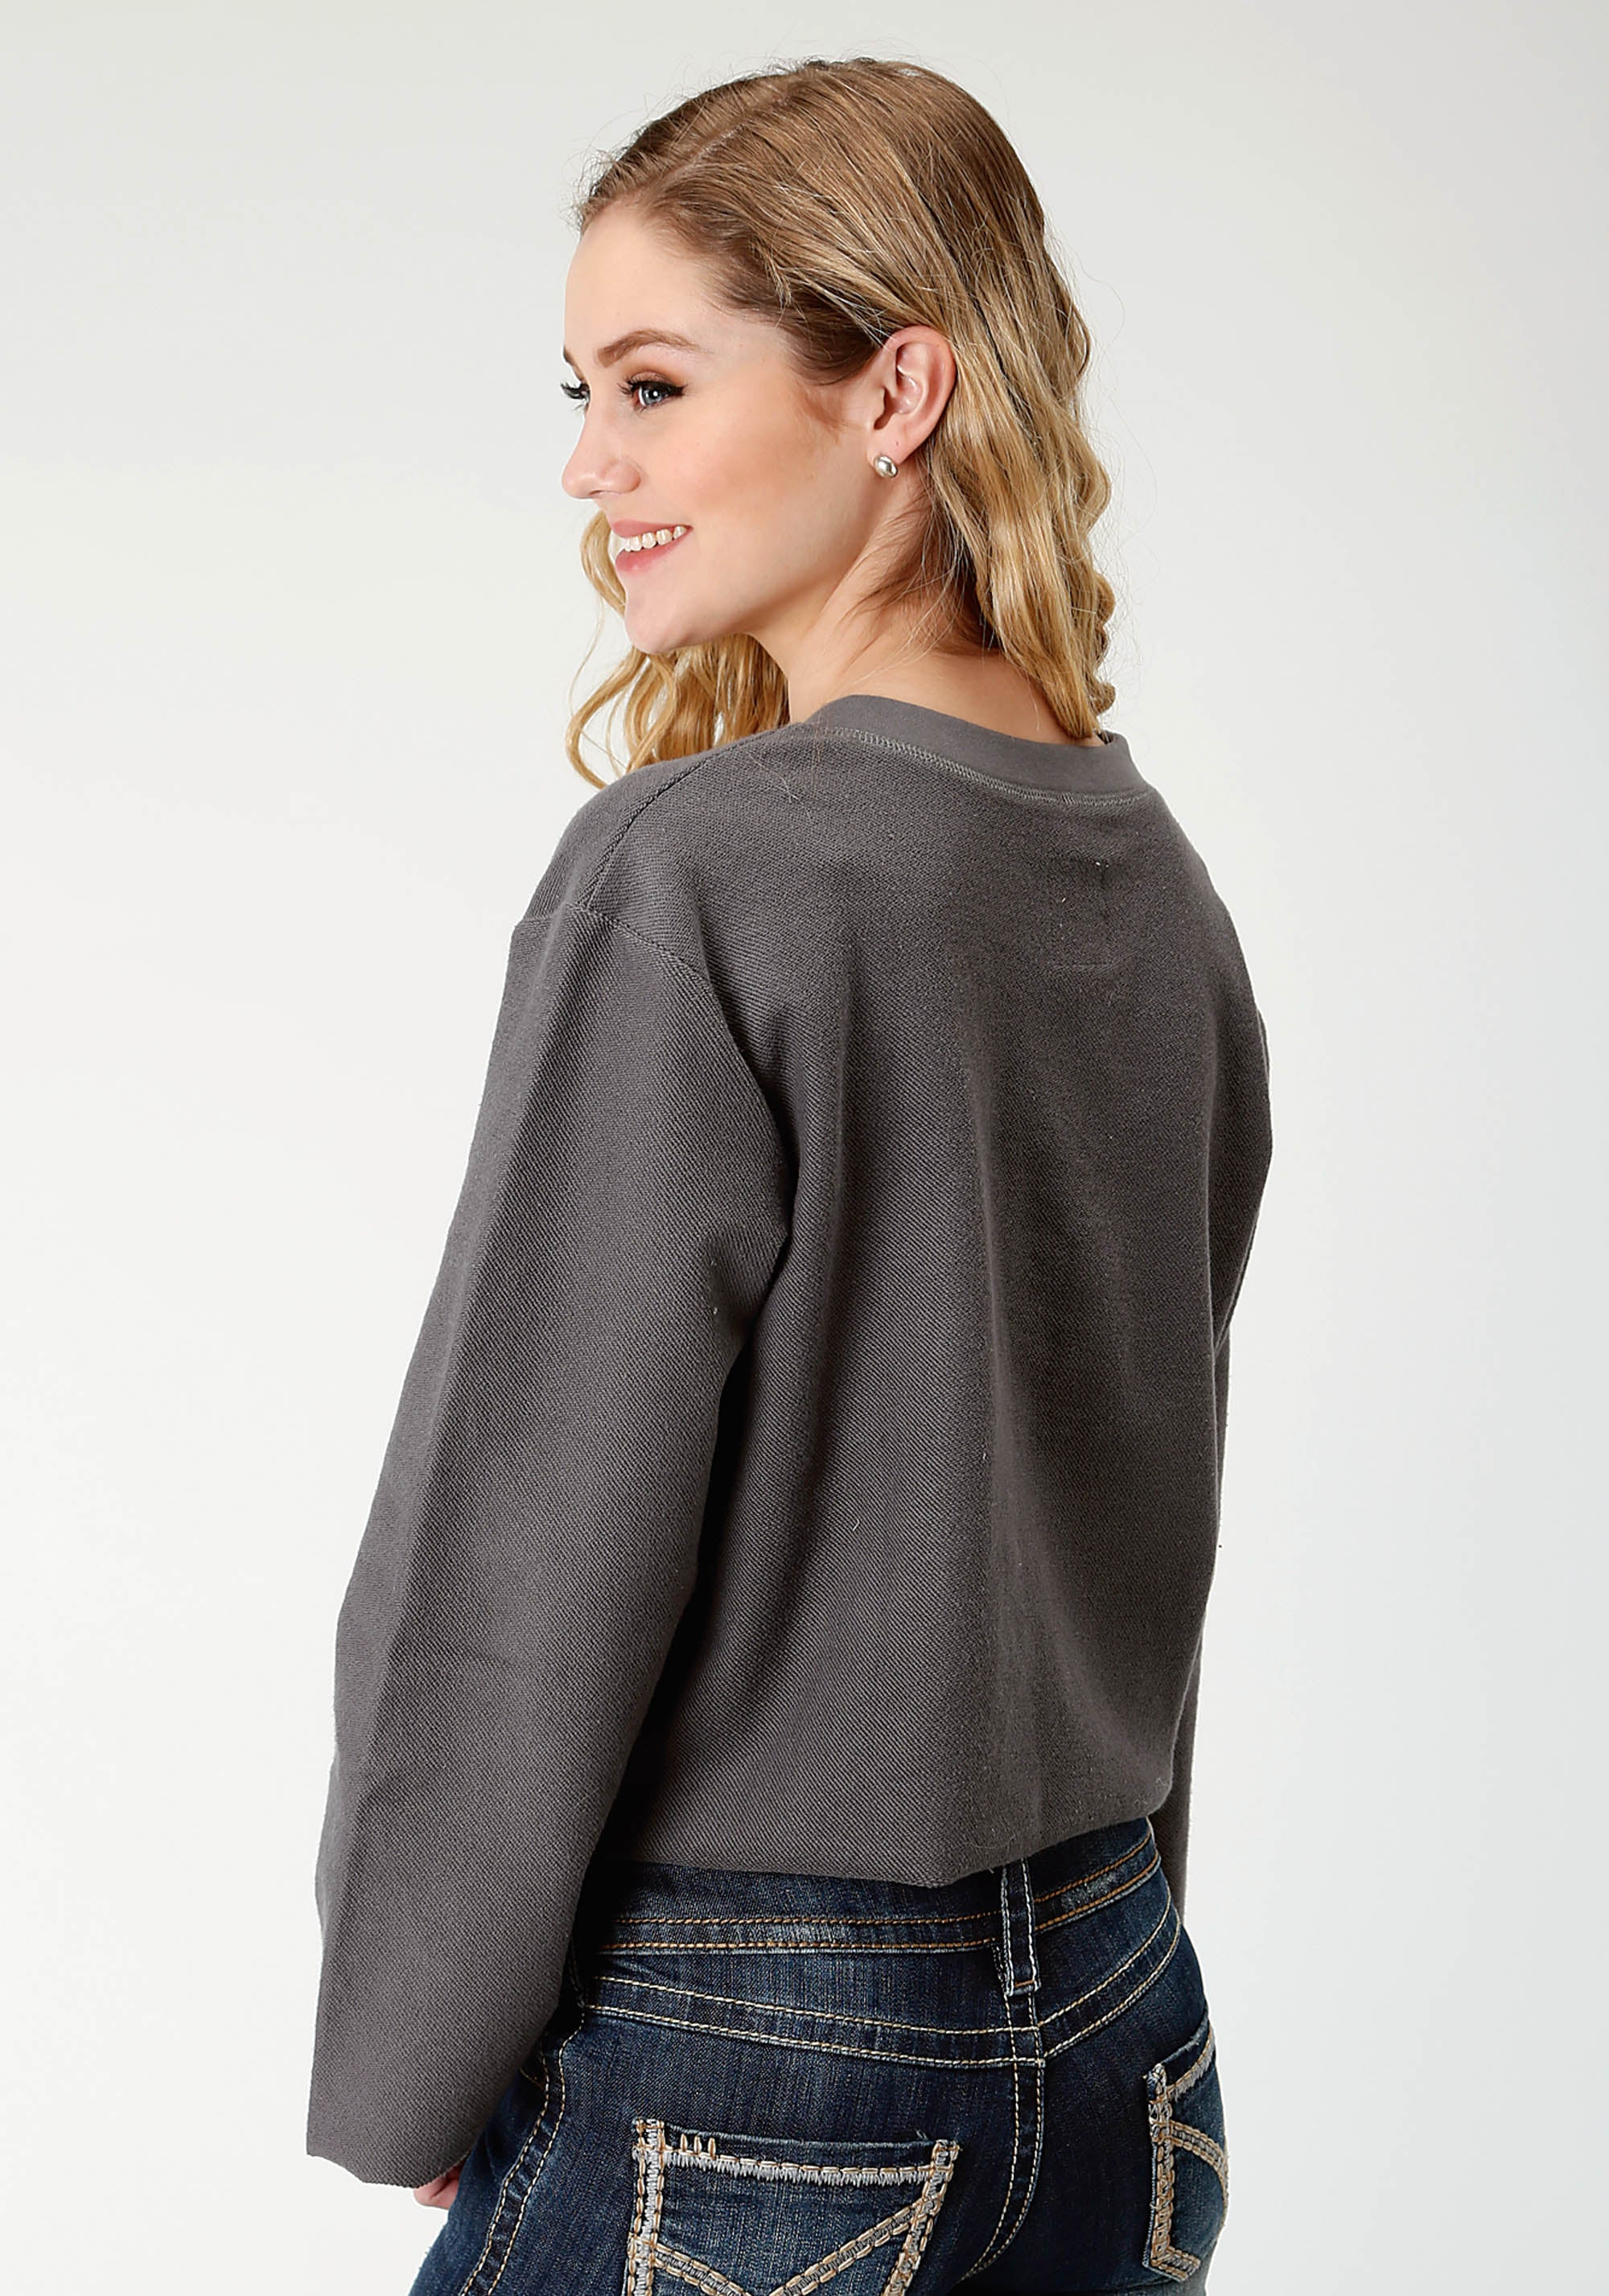 ROPER WOMENS GREY 2248 FRENCH TERRY SWEATSHIRT FIVE STAR- FALL I LONG SLEEVE